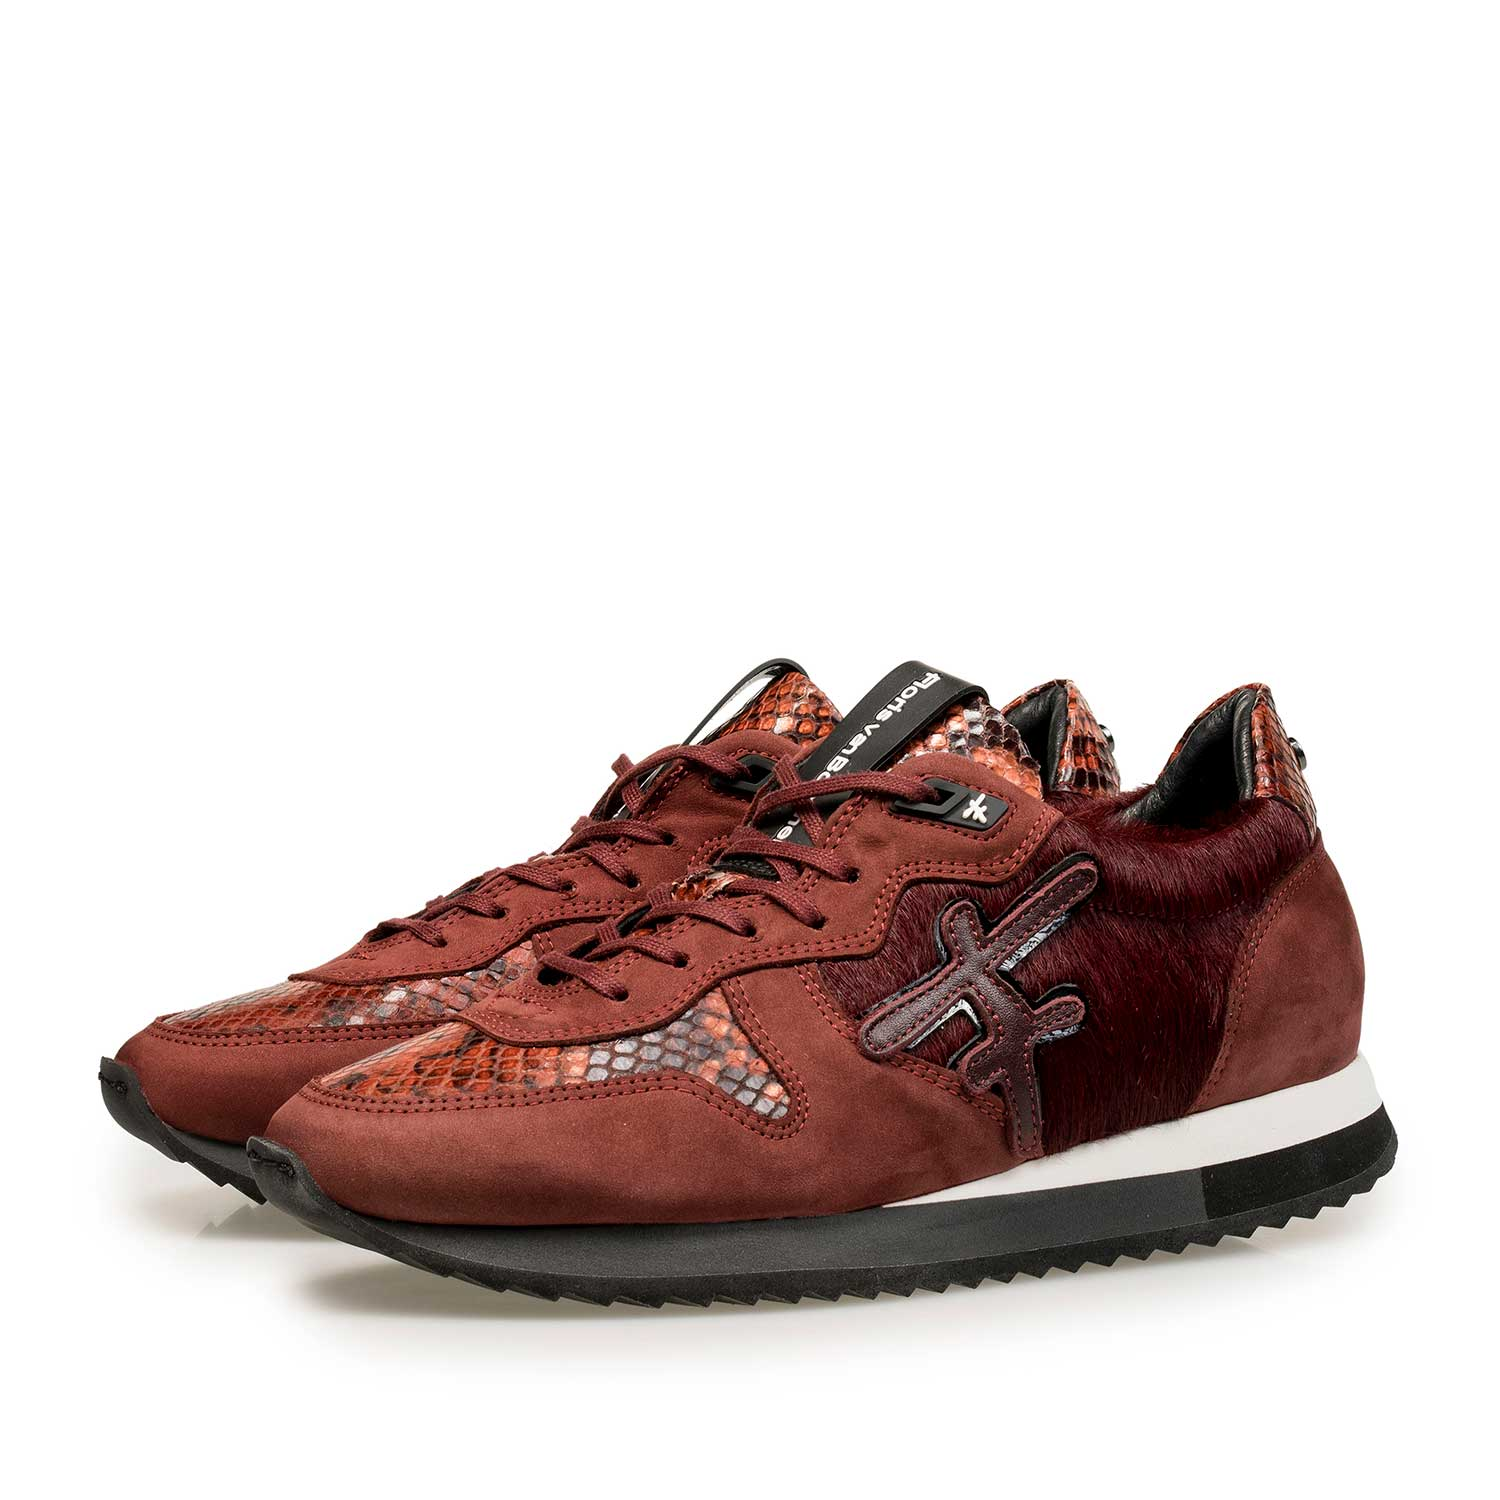 85256/00 - Bordeaux red leather sneaker with pony hair